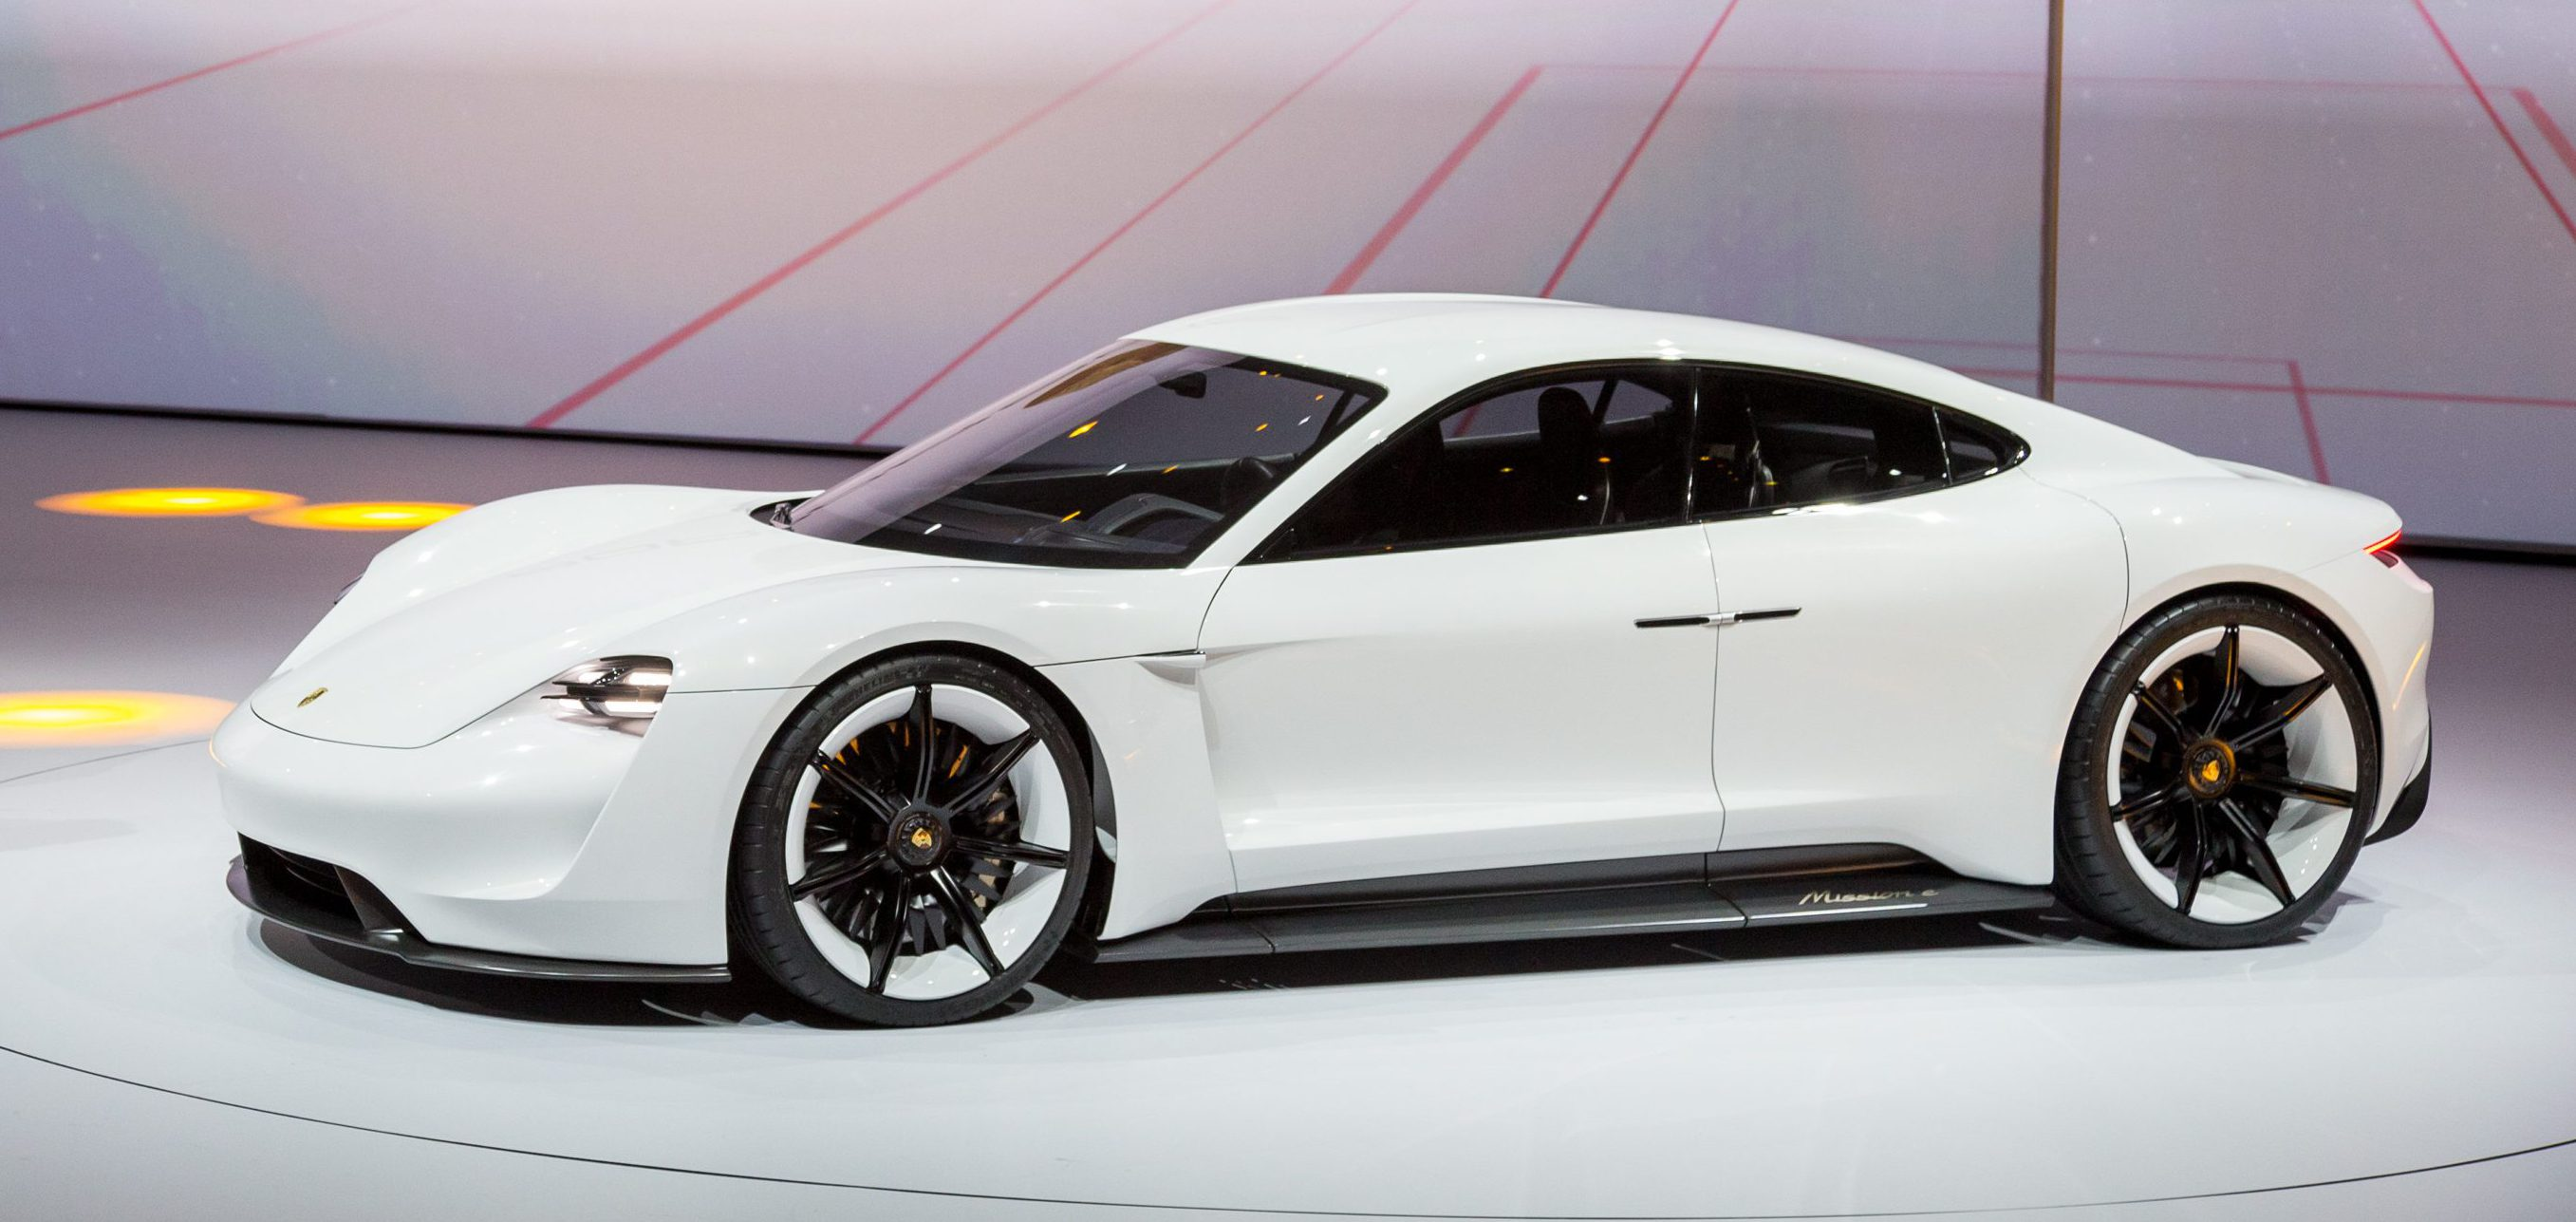 Porsche's highly-anticipated all-electric Mission E to start at around $86,000